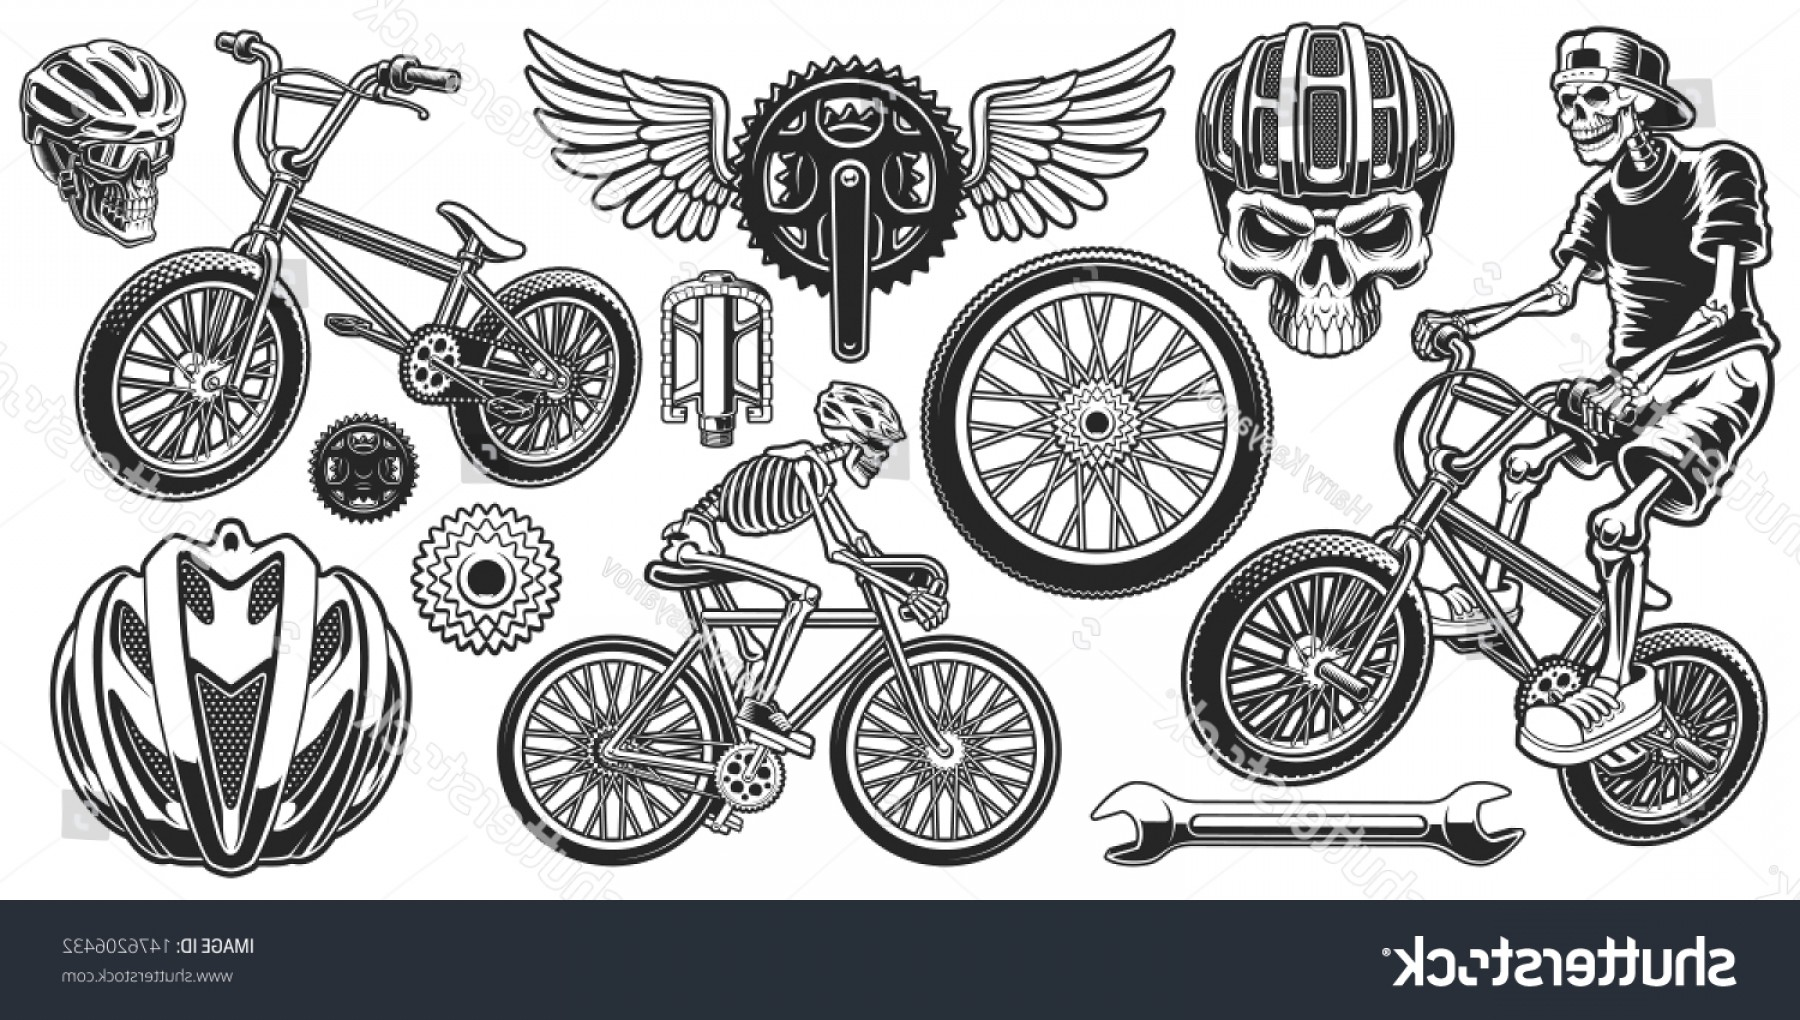 Bicycle Crank Vector Of Artwork: Set Black White Design Elements Bicycle